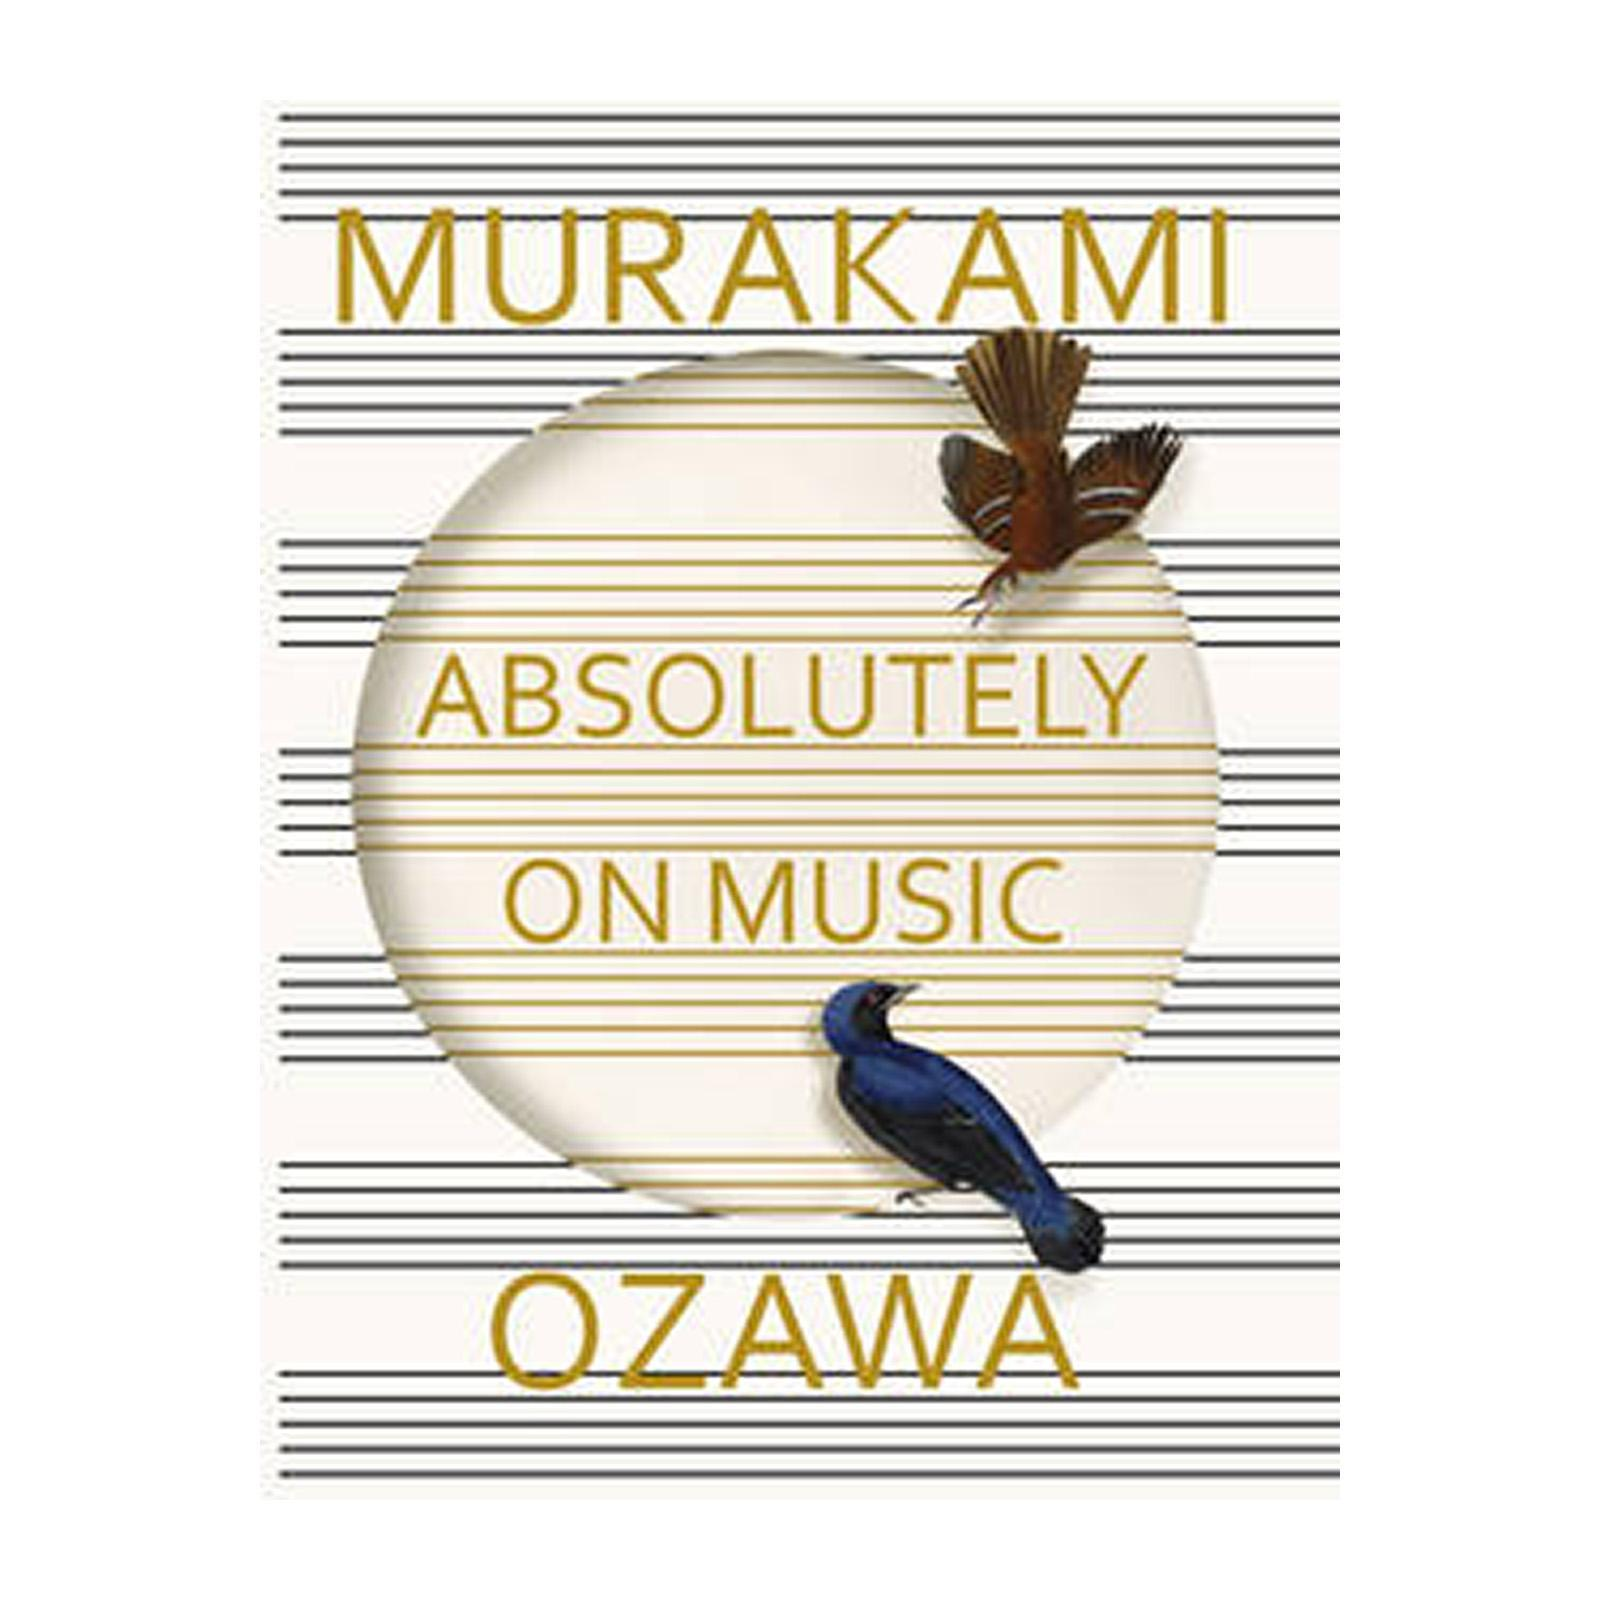 Absolutely On Music: Conversations With Seiji Ozawa (Hardcover)